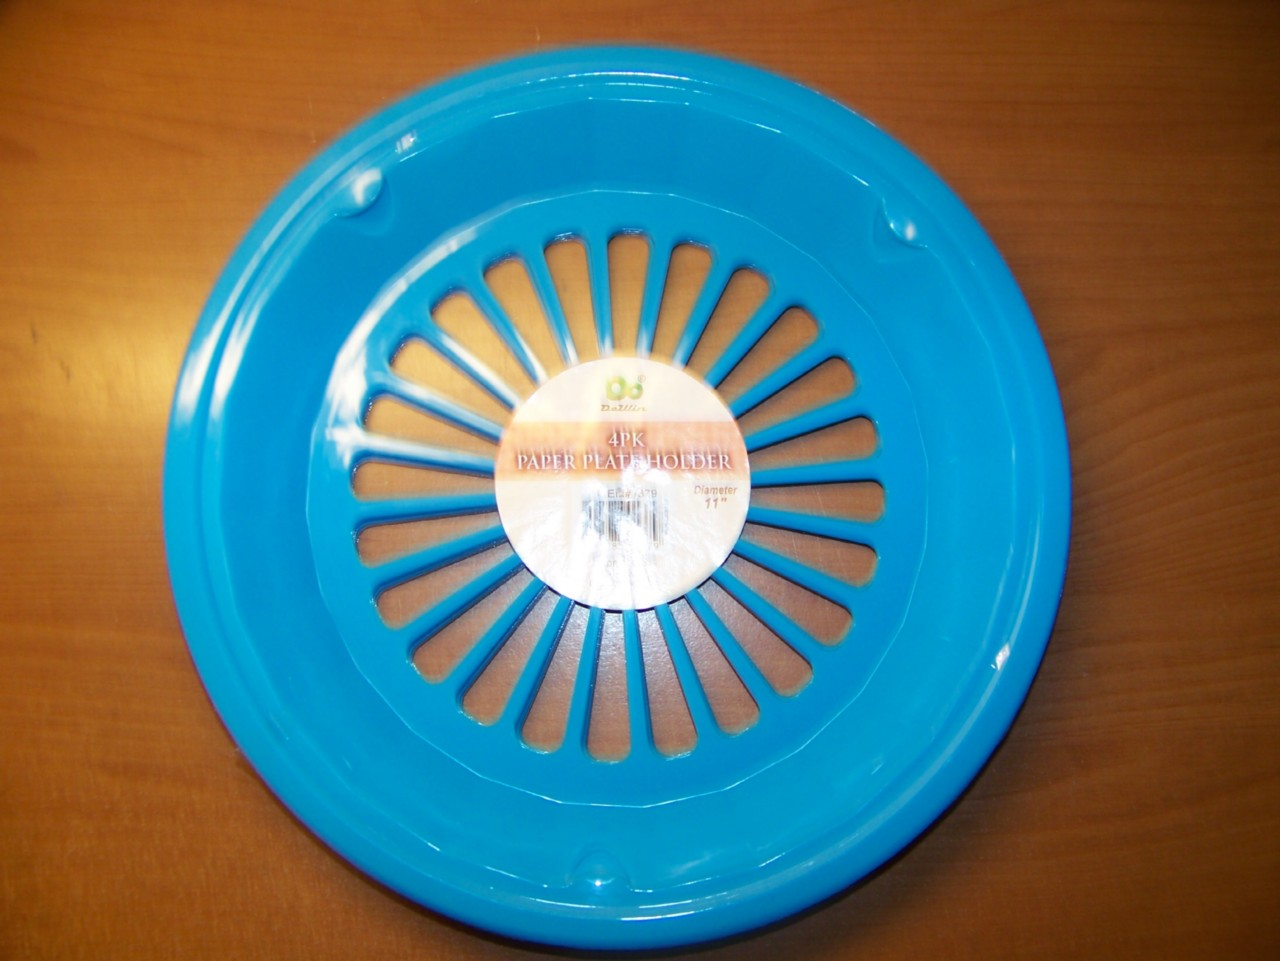 paper plate holders 2018-6-8  this is a guide about using paper plate holders paper plate holders have uses in addition to keeping your meal from ending up on the patio when the flimsy plate.